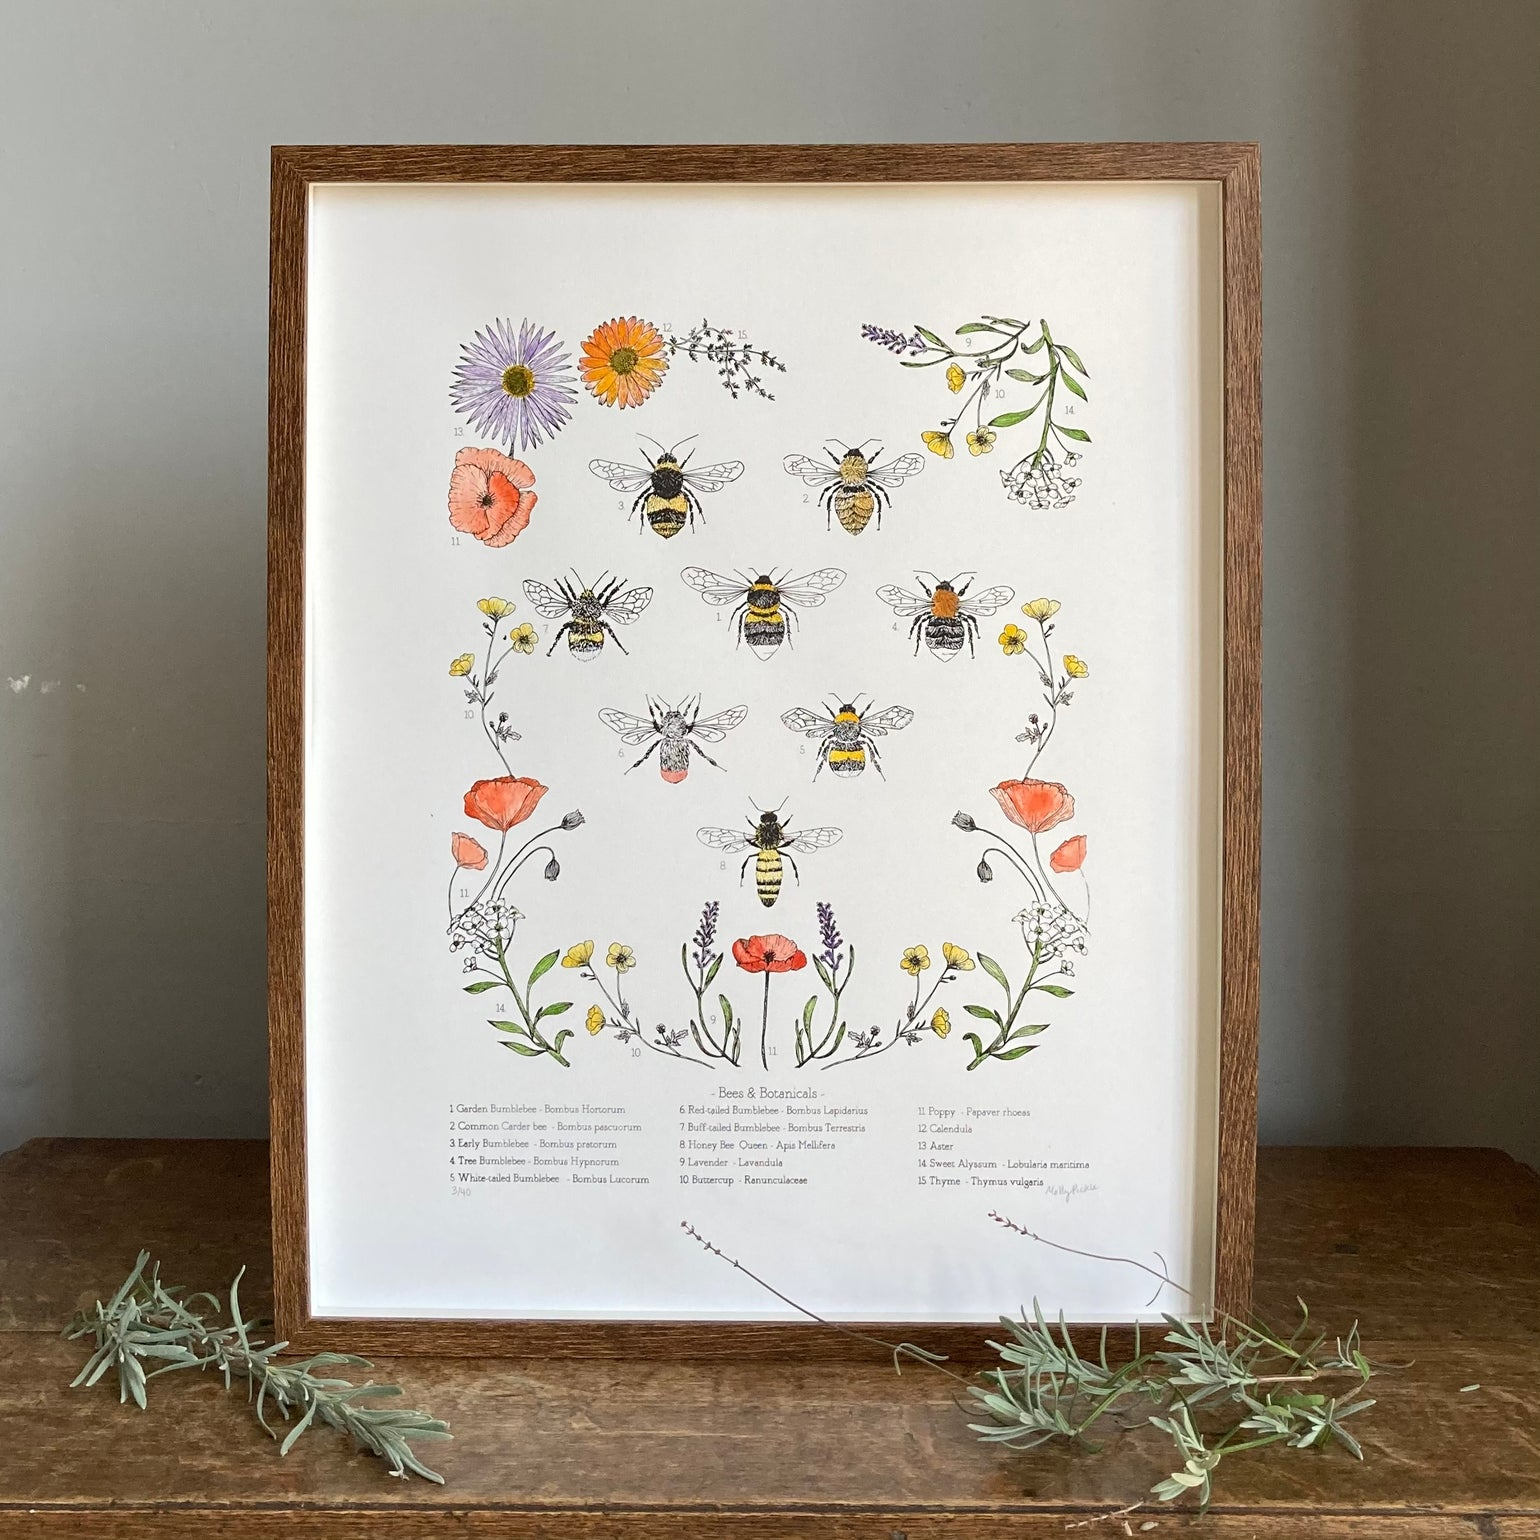 Image of Bees and Botanicals - silk screen print